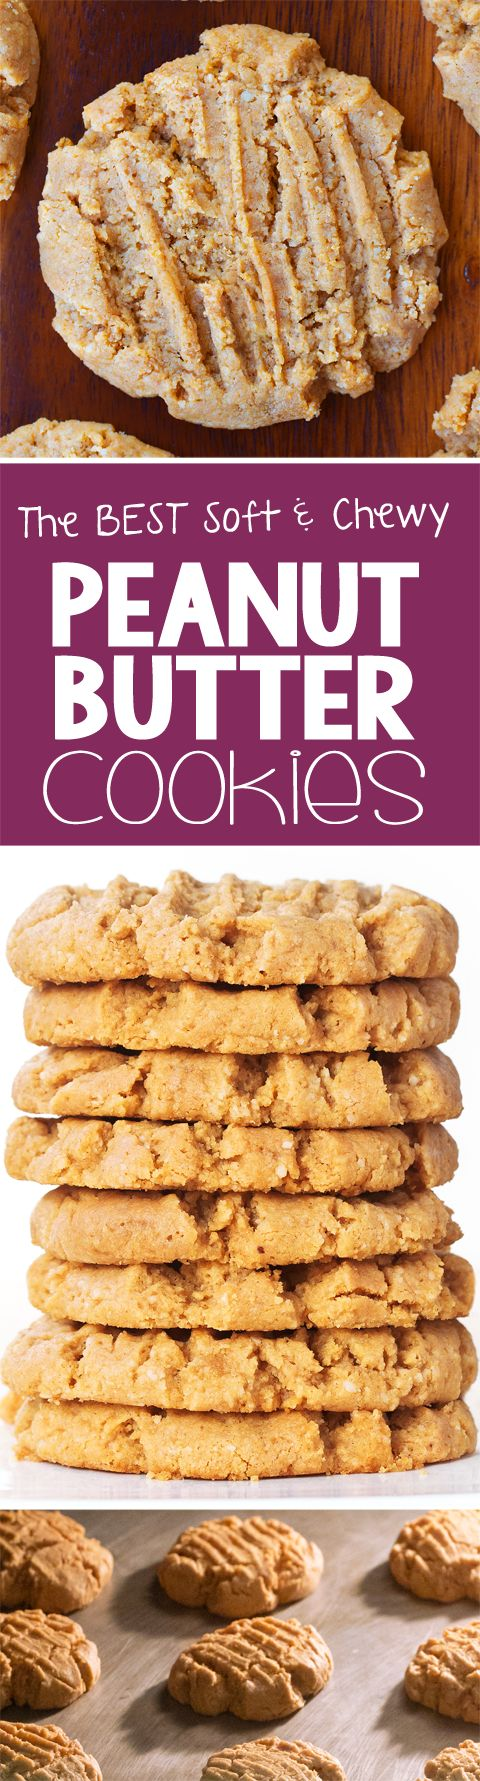 This is the ONLY peanut butter cookie recipe I will ever make!